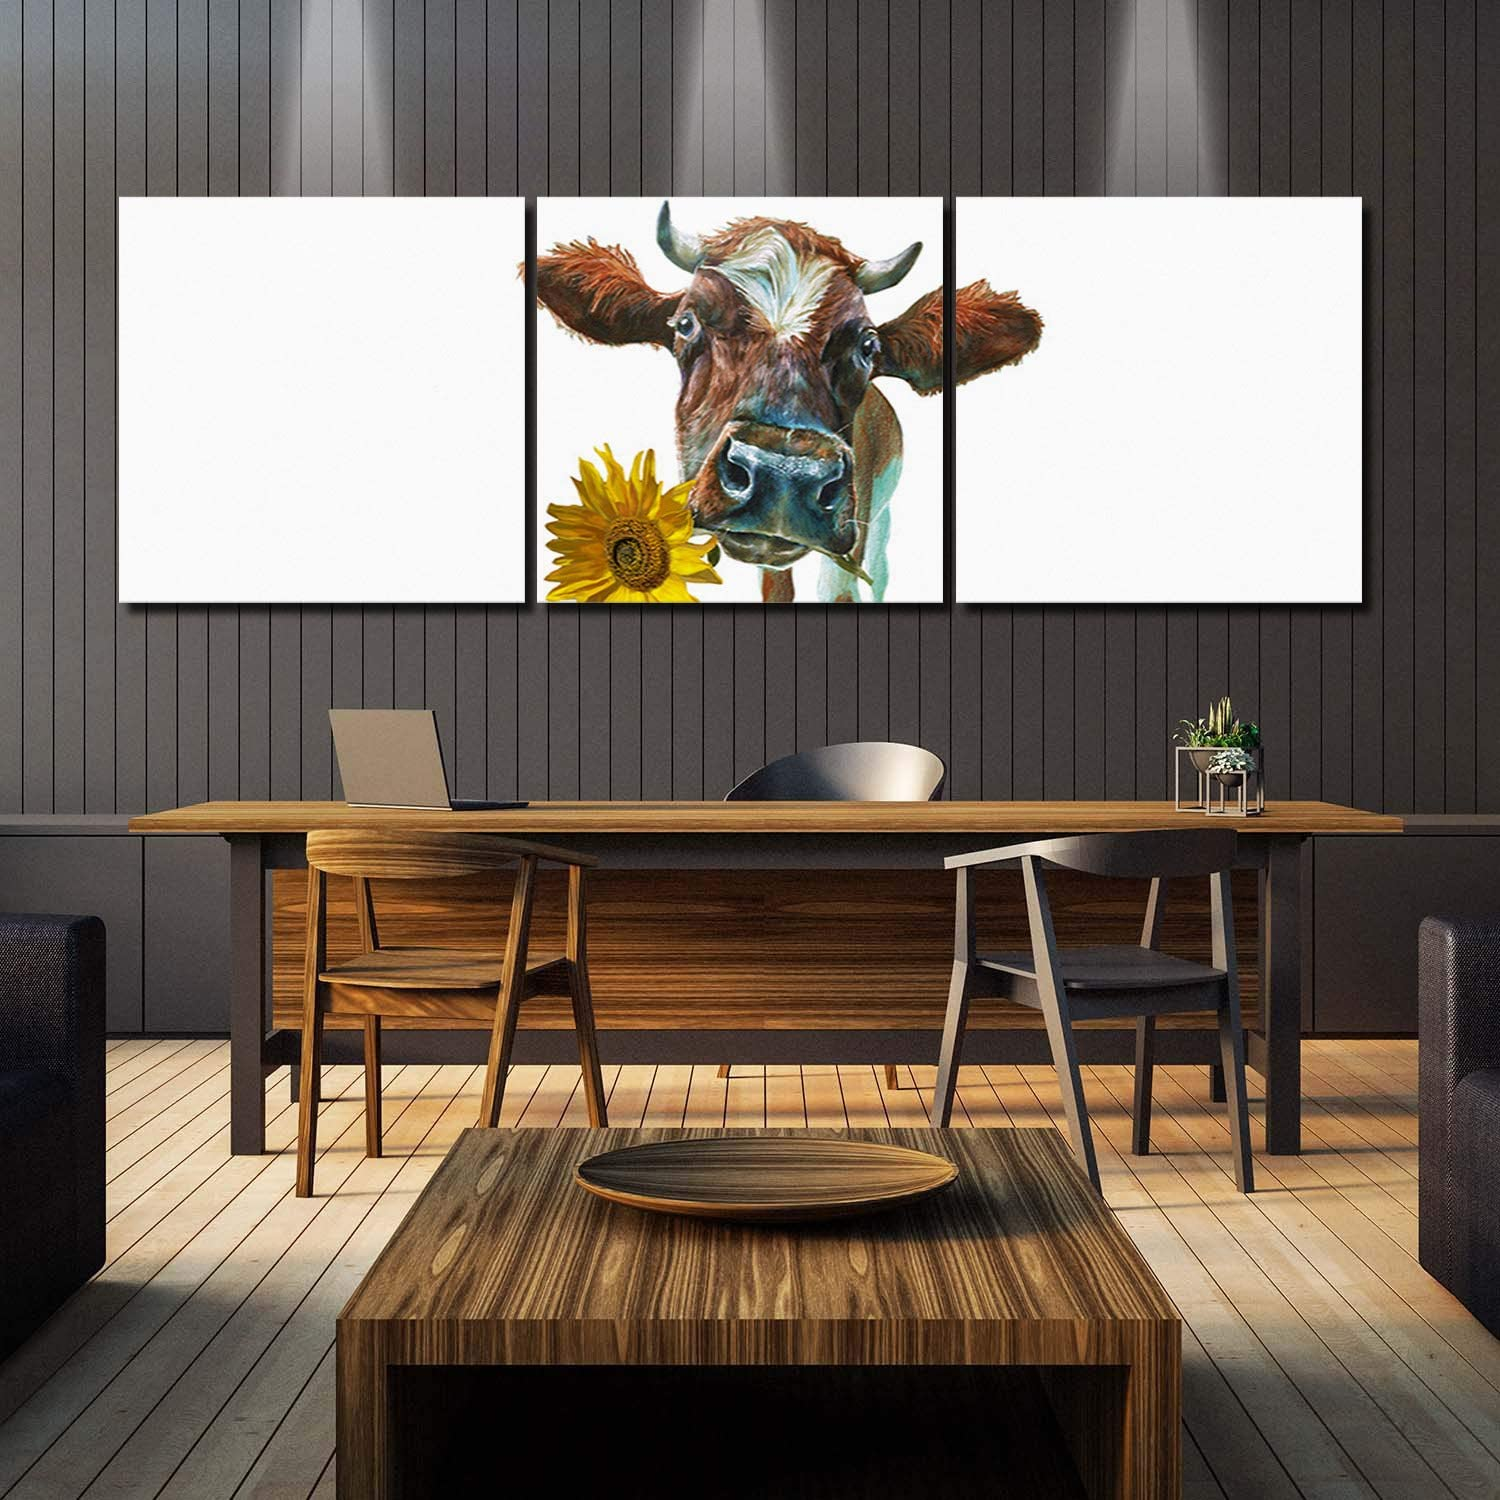 Framed Wall Be super welcome Art Super sale period limited Cattle with Sunflowers Prints Pai Canvas 3 Panel